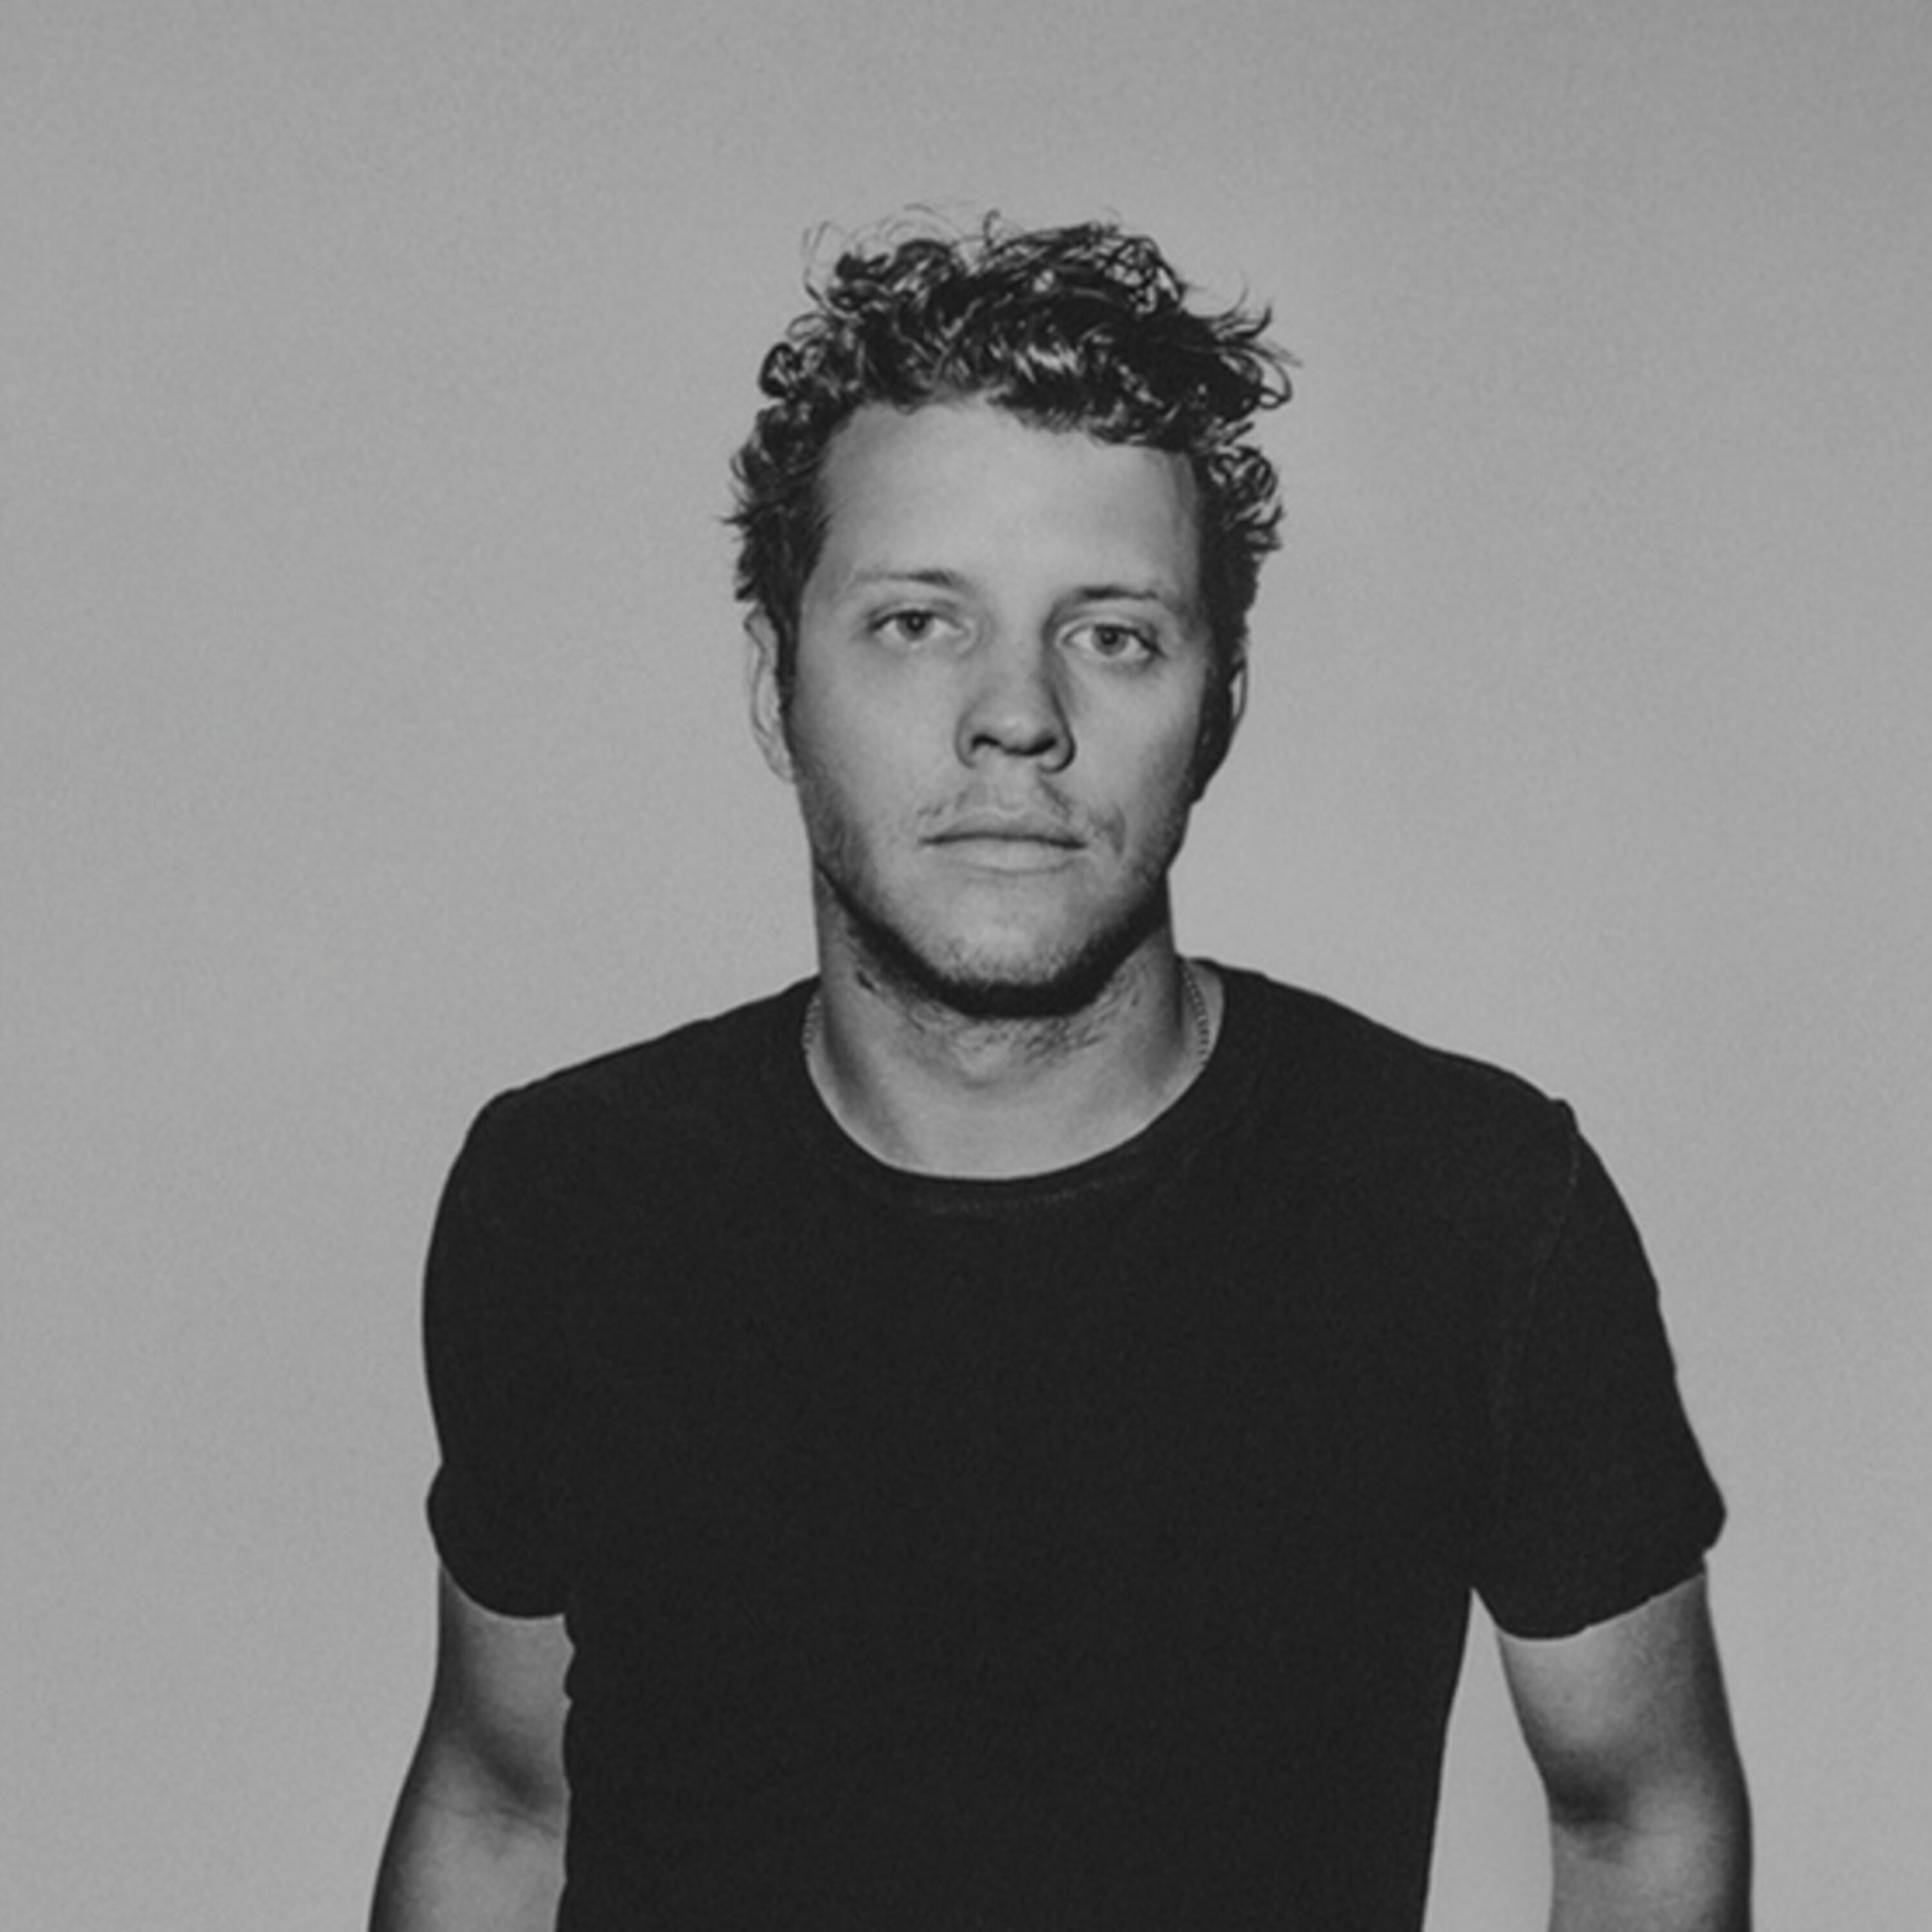 Episode 95: Anderson East Image